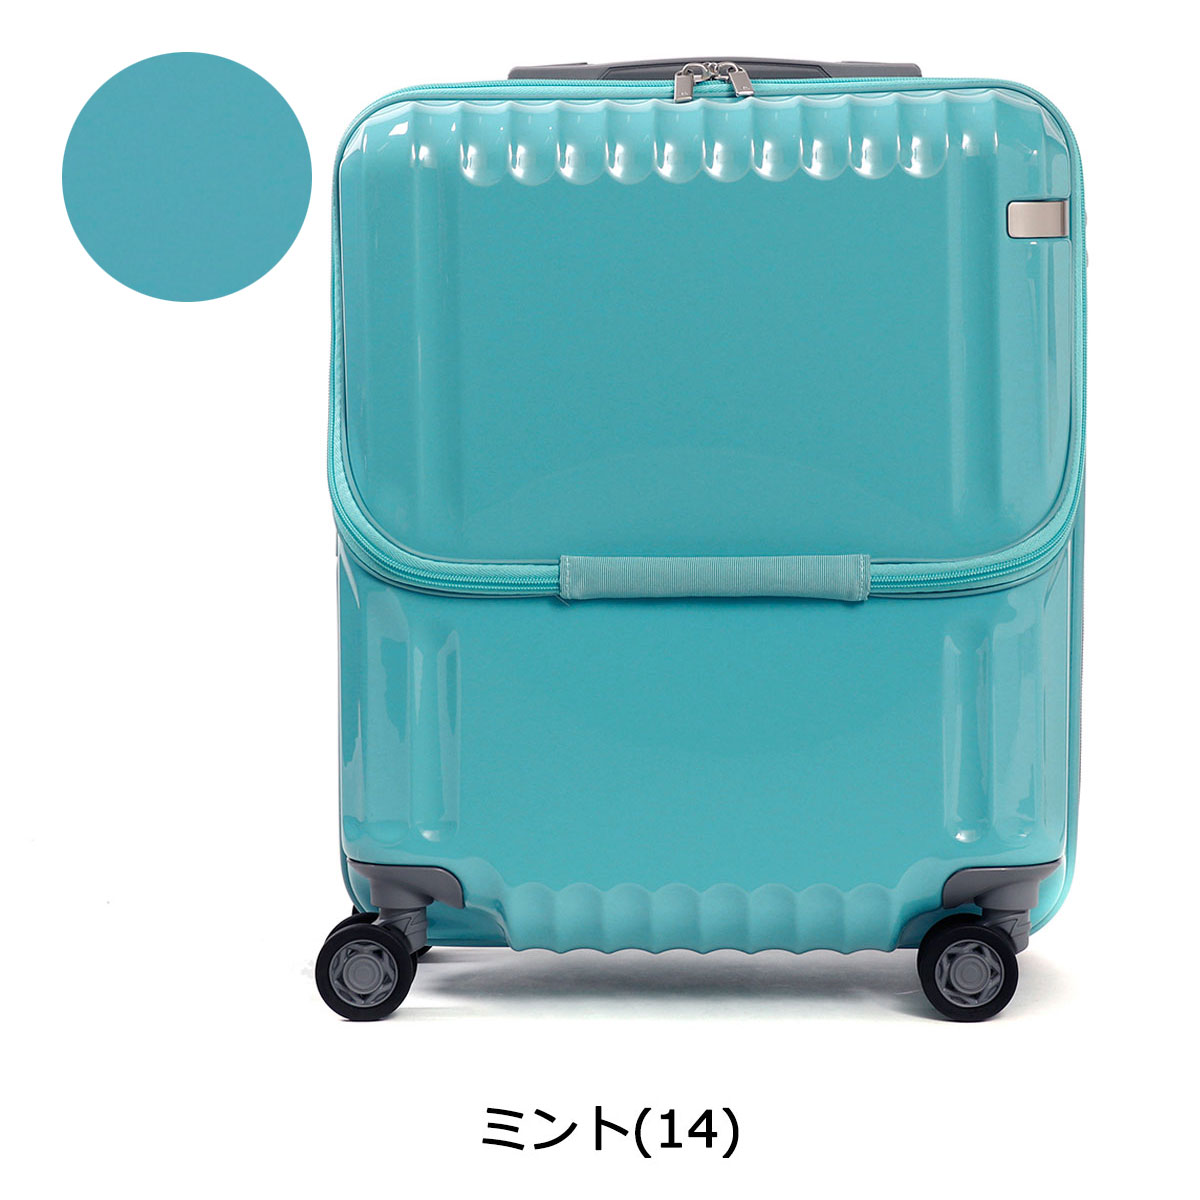 ACE LUGGAGE COUPON CODE